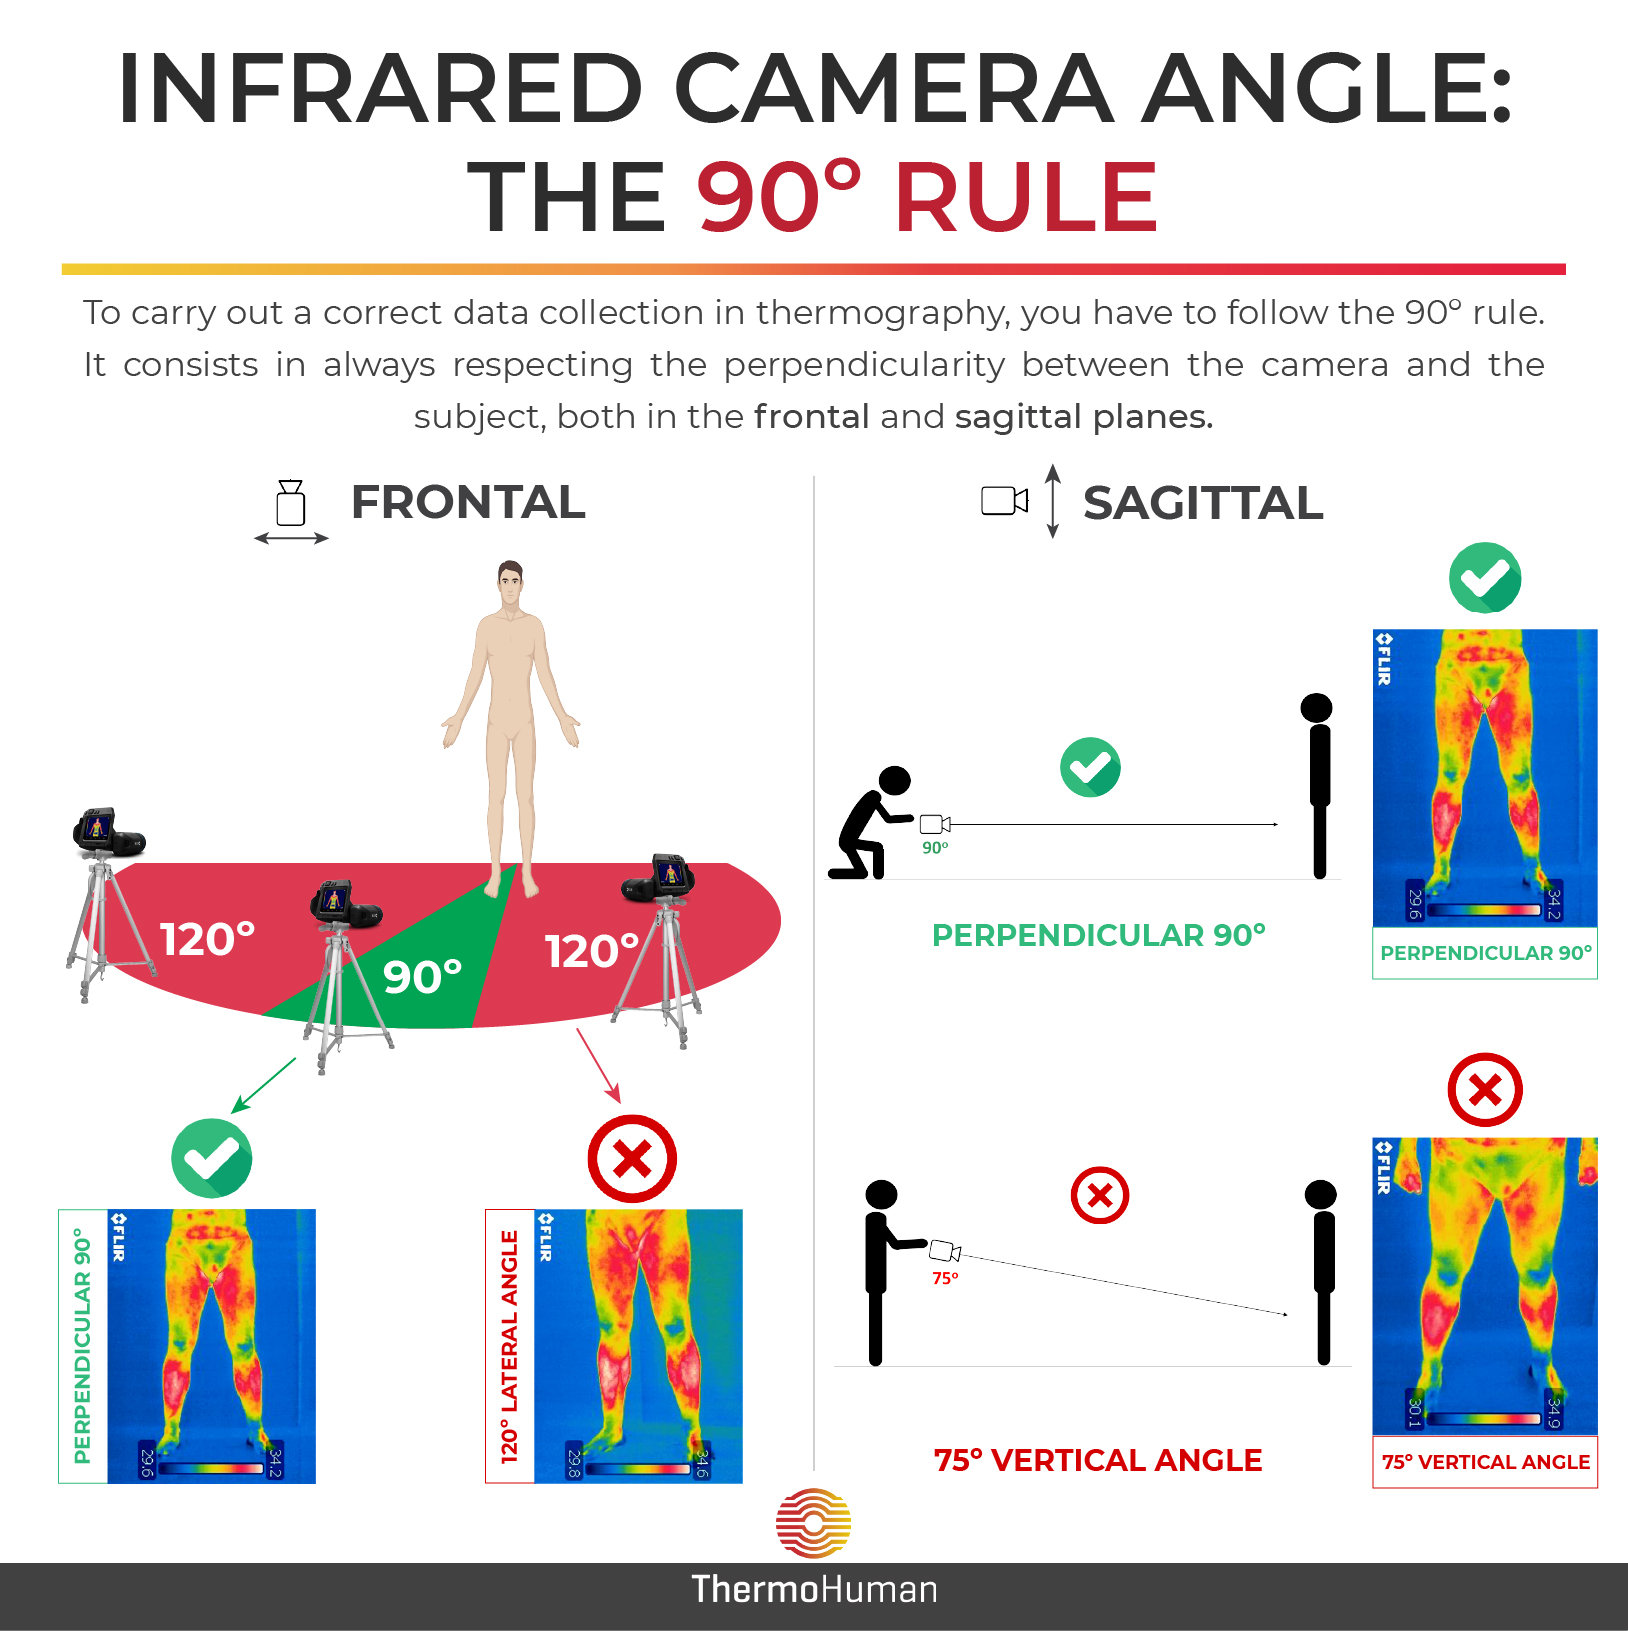 Infrared camera angle: the 90º rule